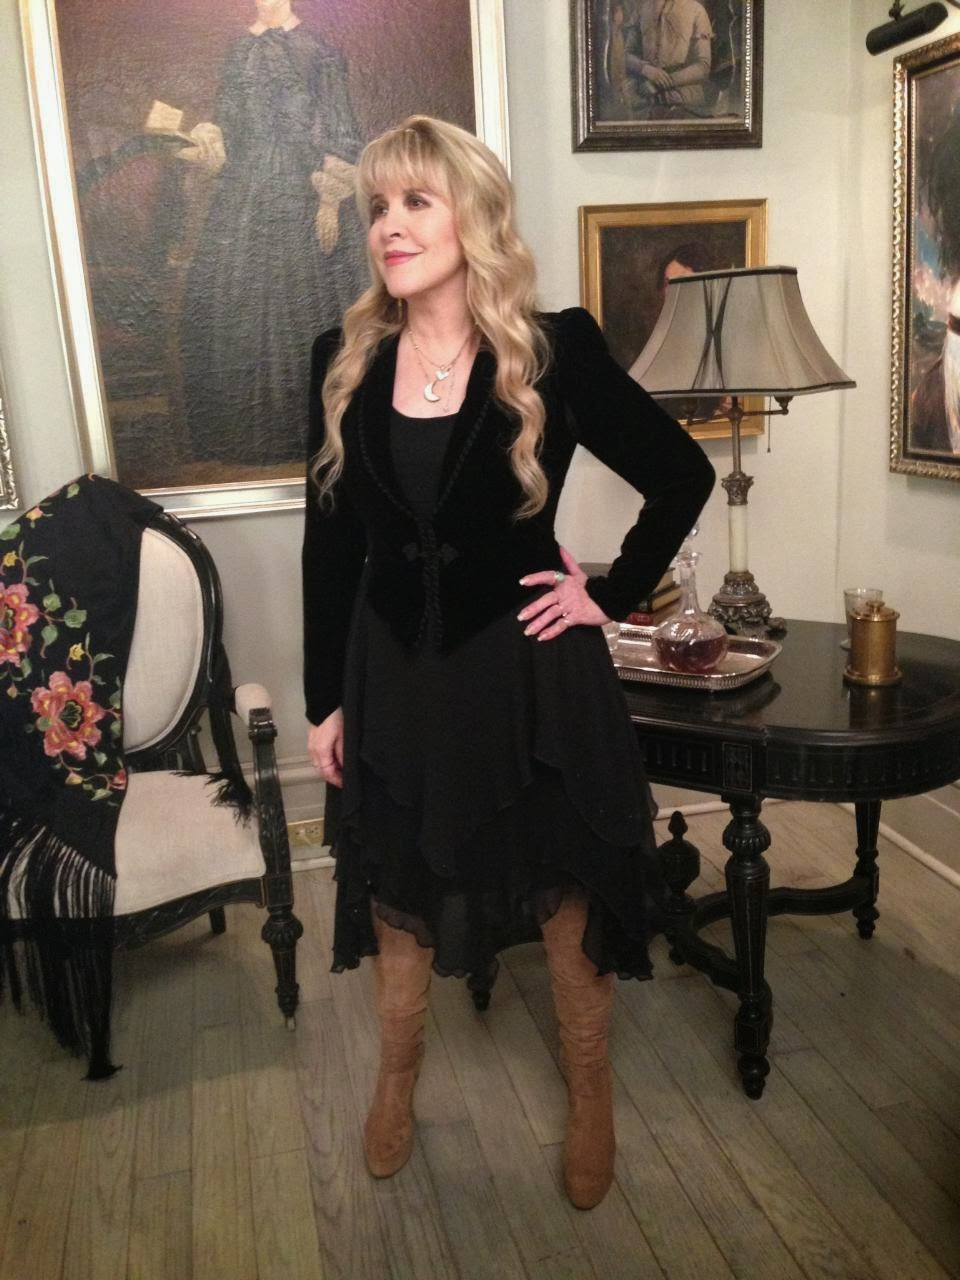 Fleetwood Mac News Stevie S In The House The Coven House Ahscoven Ahs Ahsfx